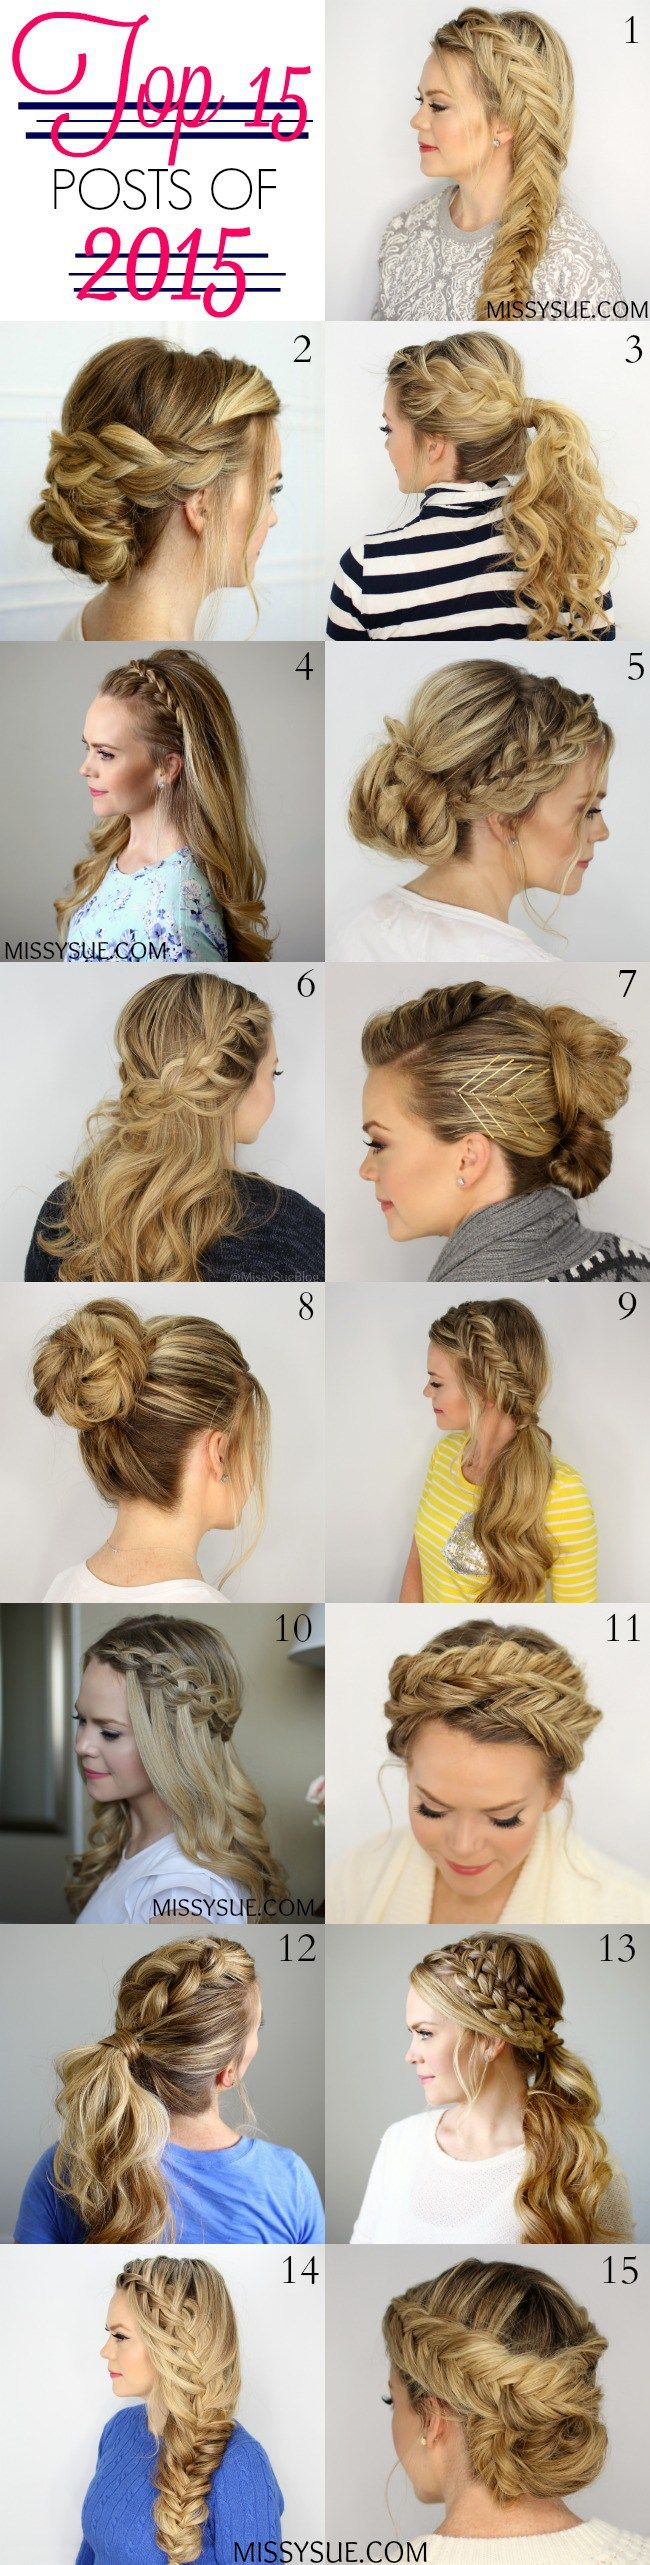 It's a new year which means a new of fun hairstyles, tutorials, and more! I wanted to quickly share the top 15 posts from this past year and tell you how much I loved loved seeing which hairstyles were your favorite. It has been so much fun branching out and stretching my hair skills this past year with such a wide assortment of hairstyles and braiding techniques. I am so excited to see what the new year has in store and I am already planning some other great tutorials. Be sure to stay…